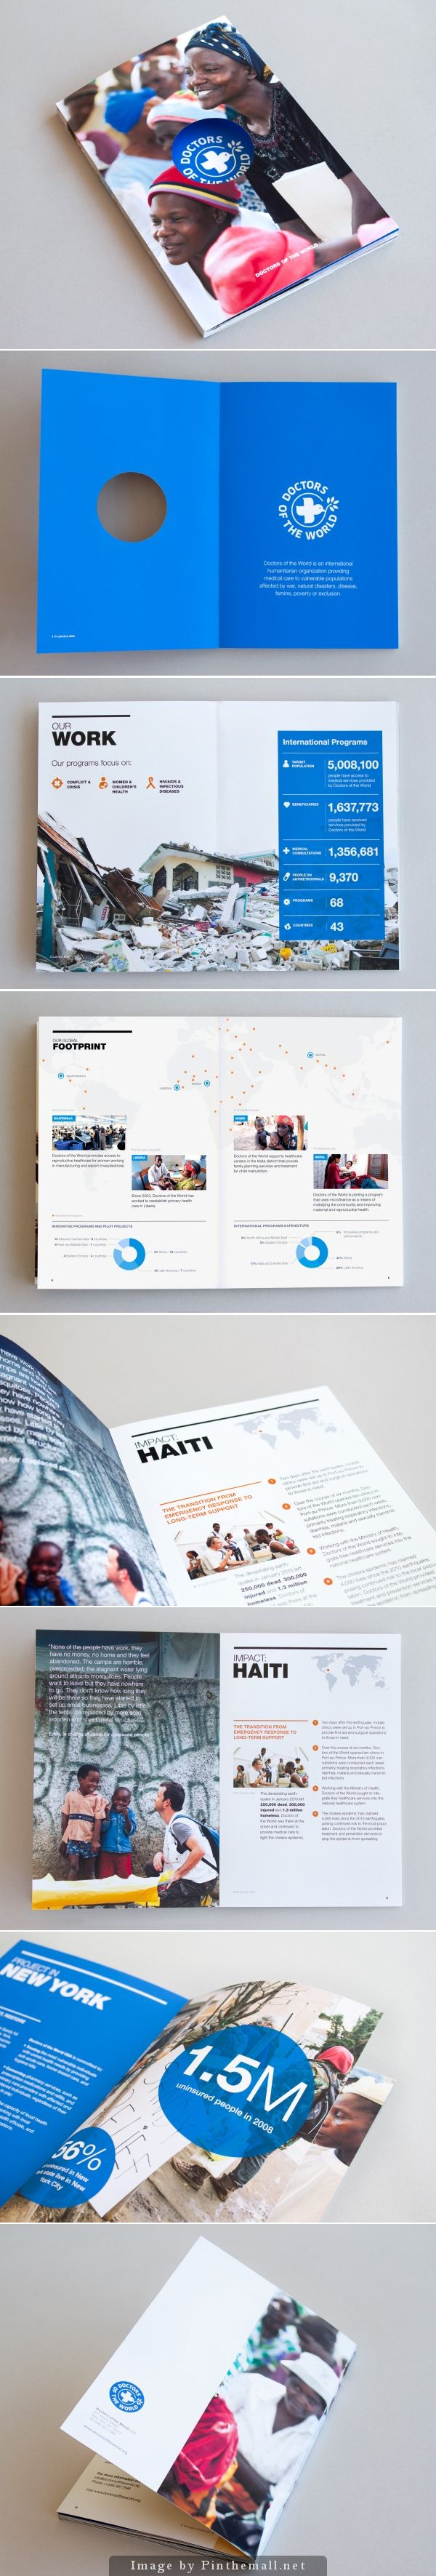 Doctors of the World. This book/pamphlet has beautiful layouts and infographics that clearly portray the work and goals of a non-profit. #bookdesign #layout @infographic